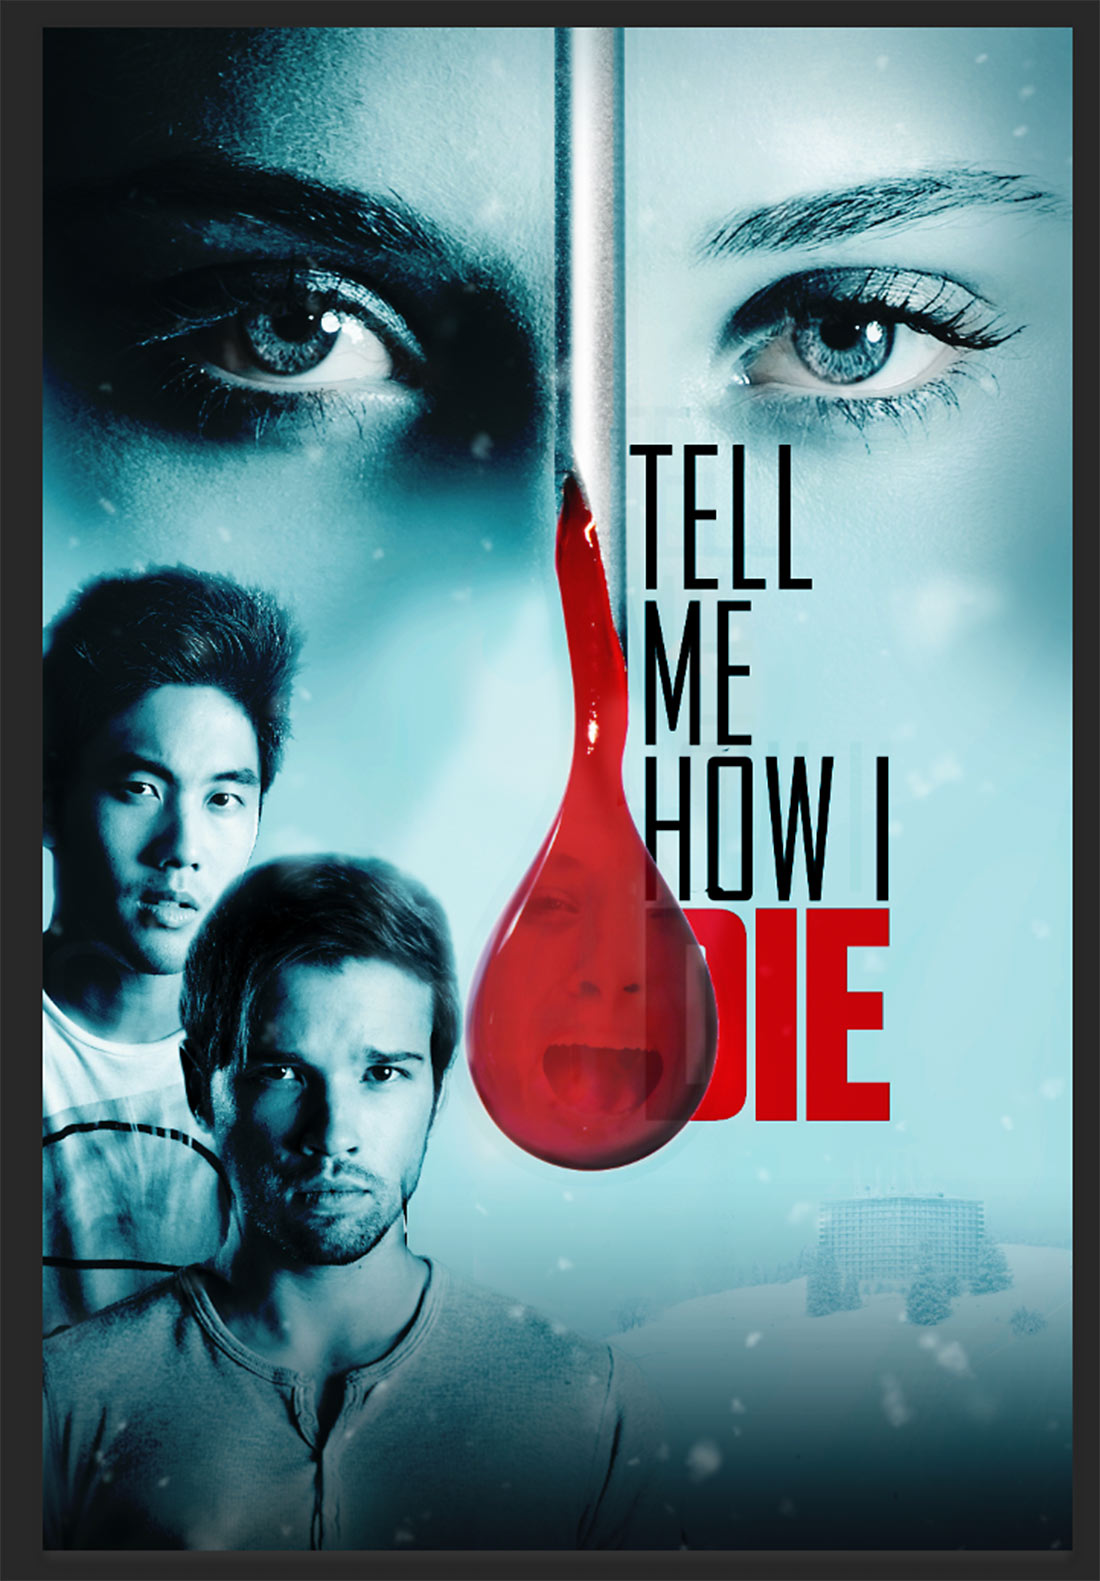 tell-me-how-i-die-movie-poster-images